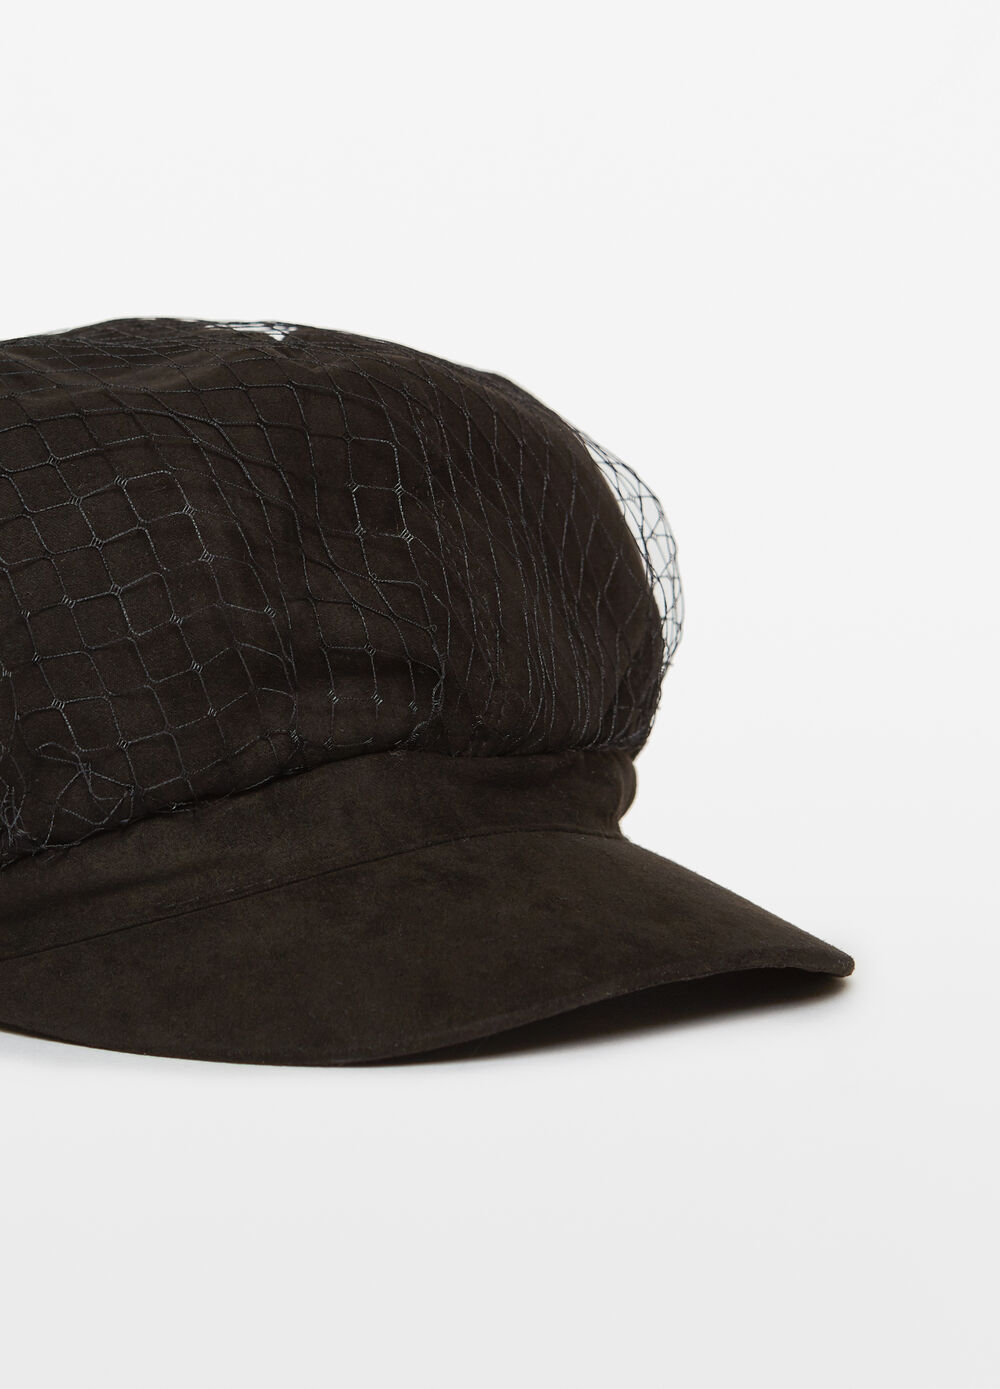 Baker boy hat with mesh